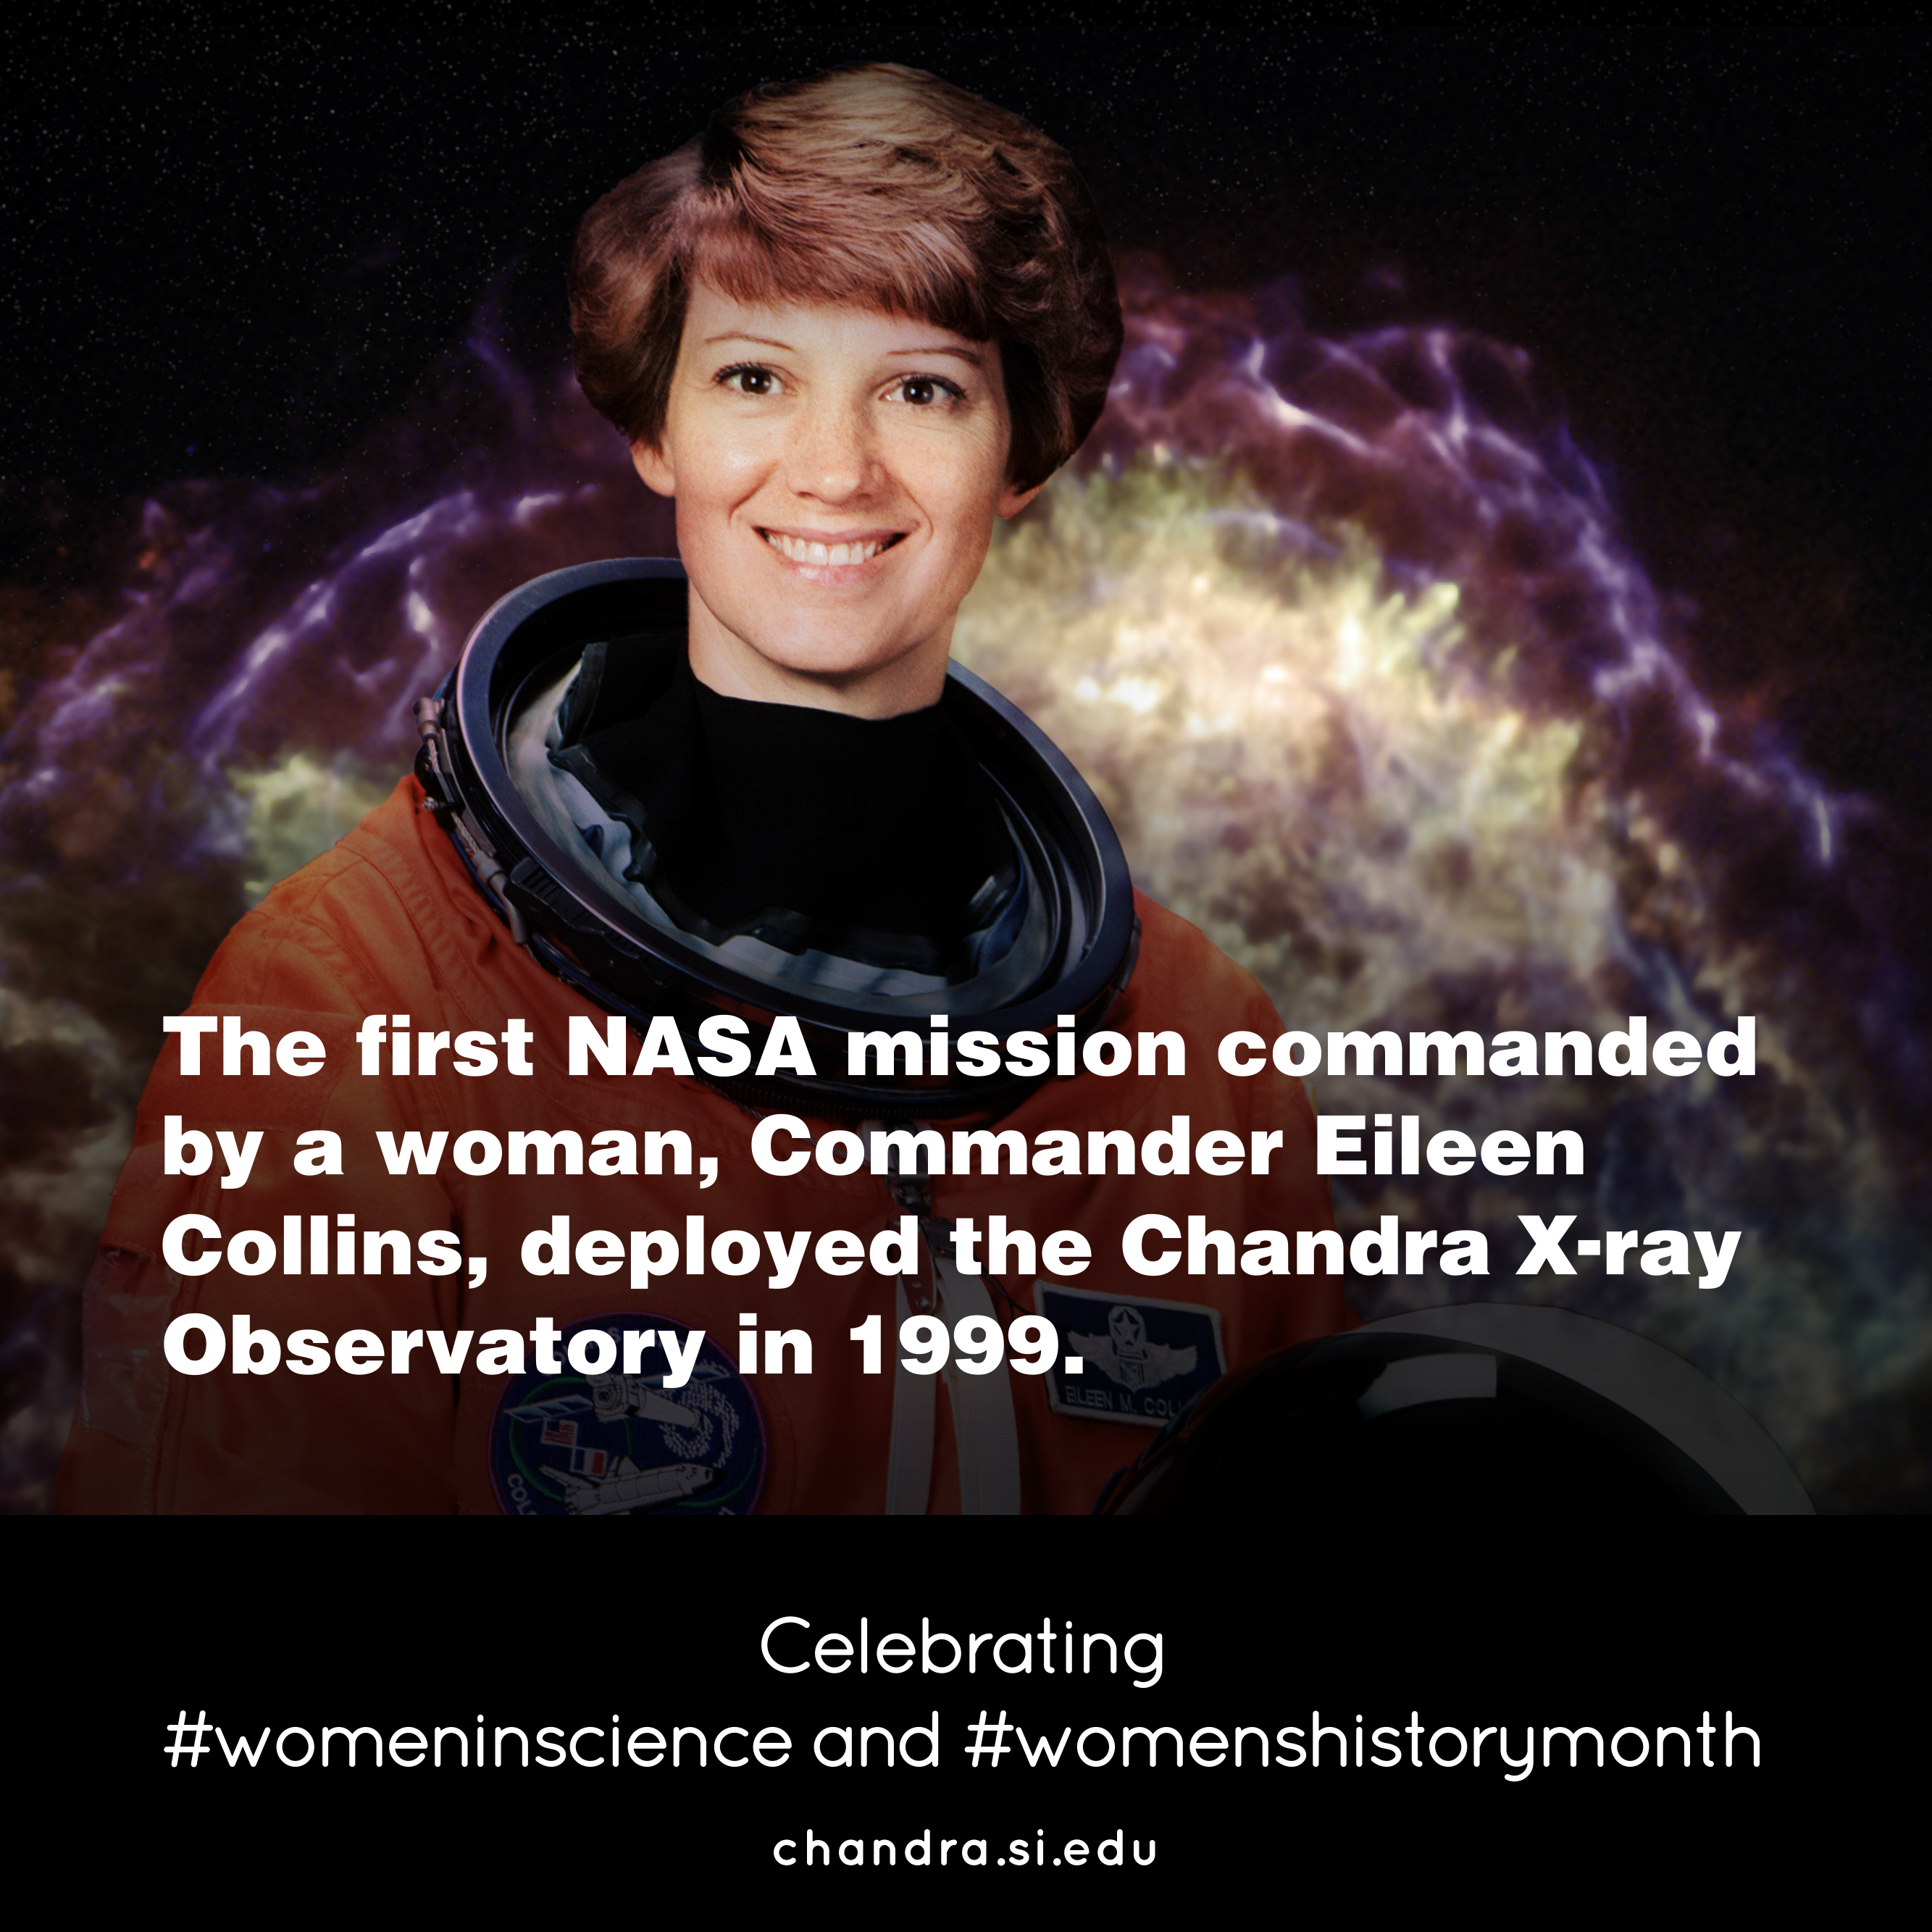 a overview of the eileen collins and chandra observatory Introduction the chandra x-ray observatory (originally called the advanced x- ray  after initial deployment by the space shuttle columbia, eileen collins (fig.